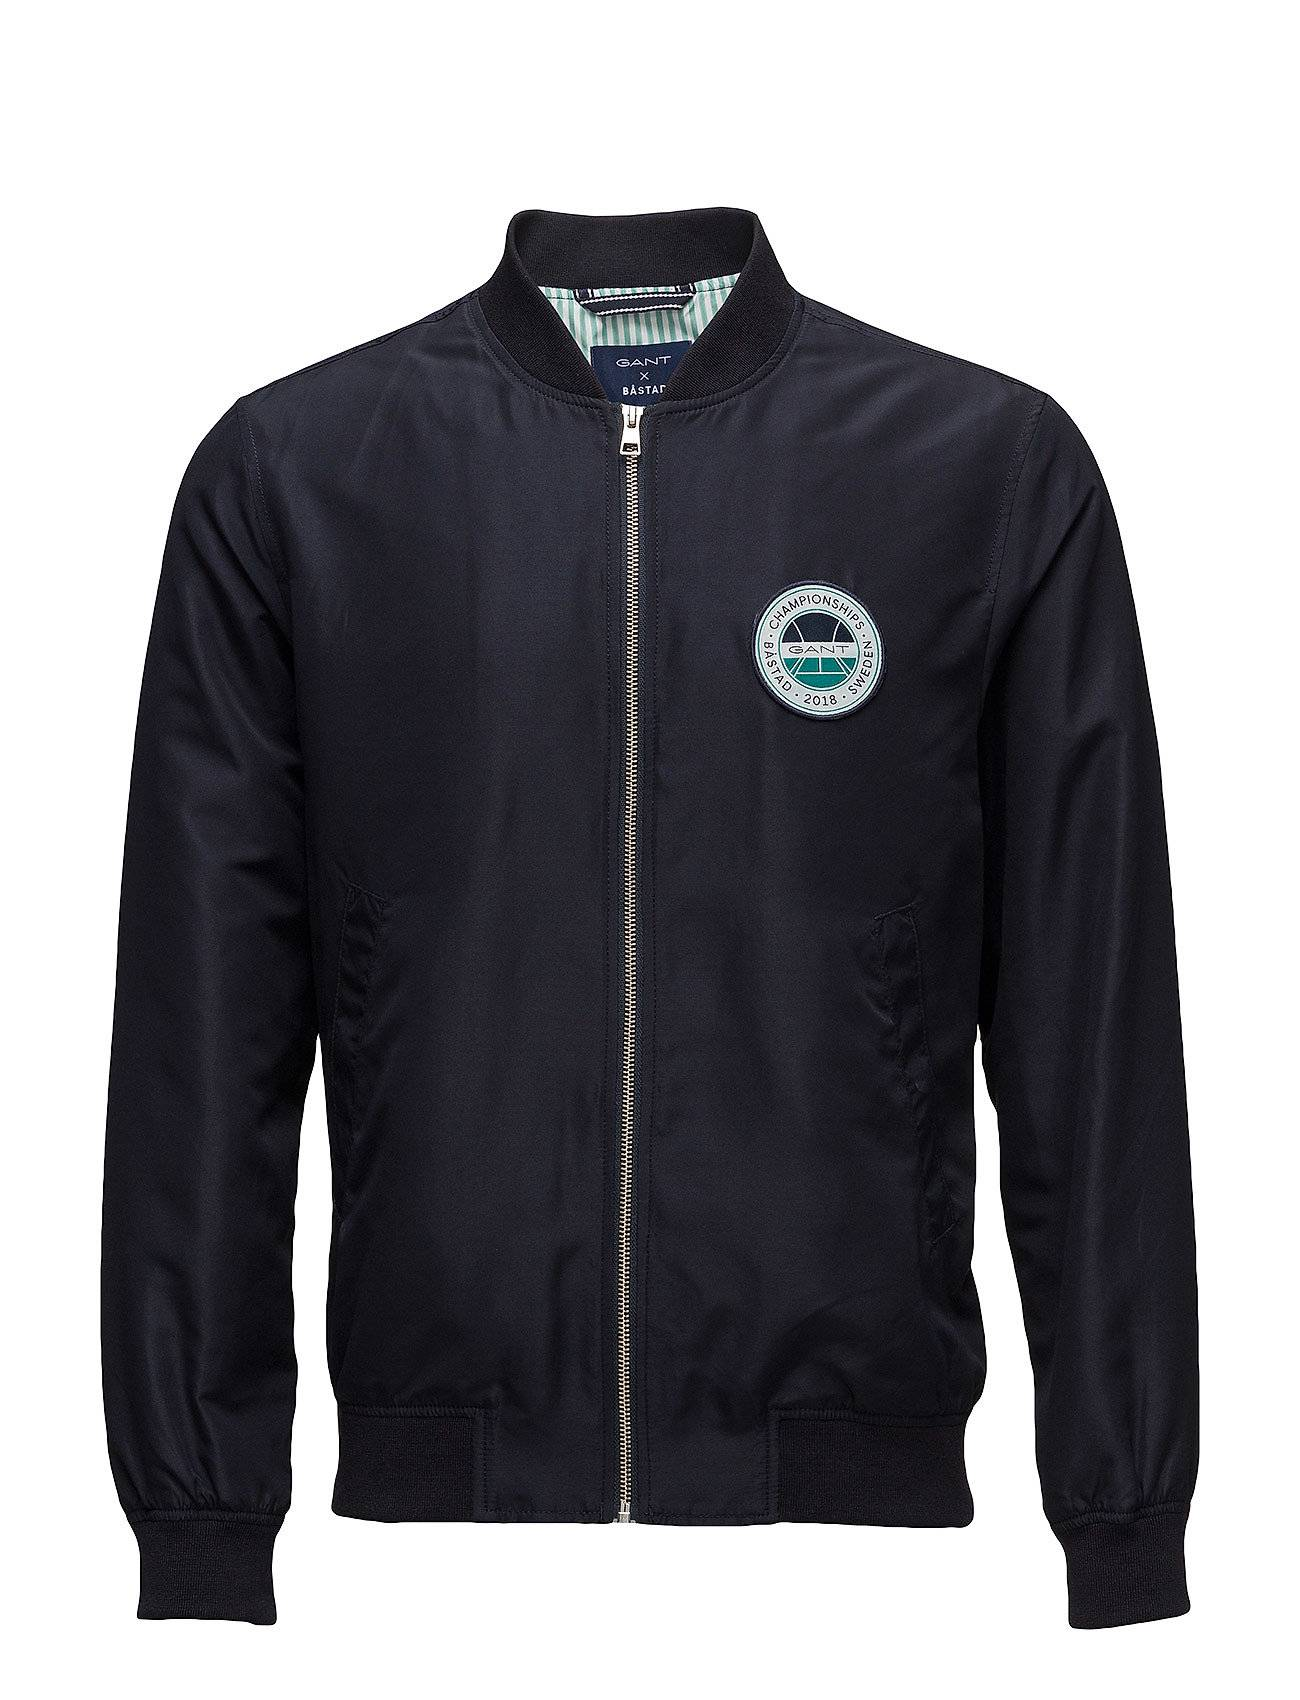 GANT Op1. The BÅStad Court Jacket